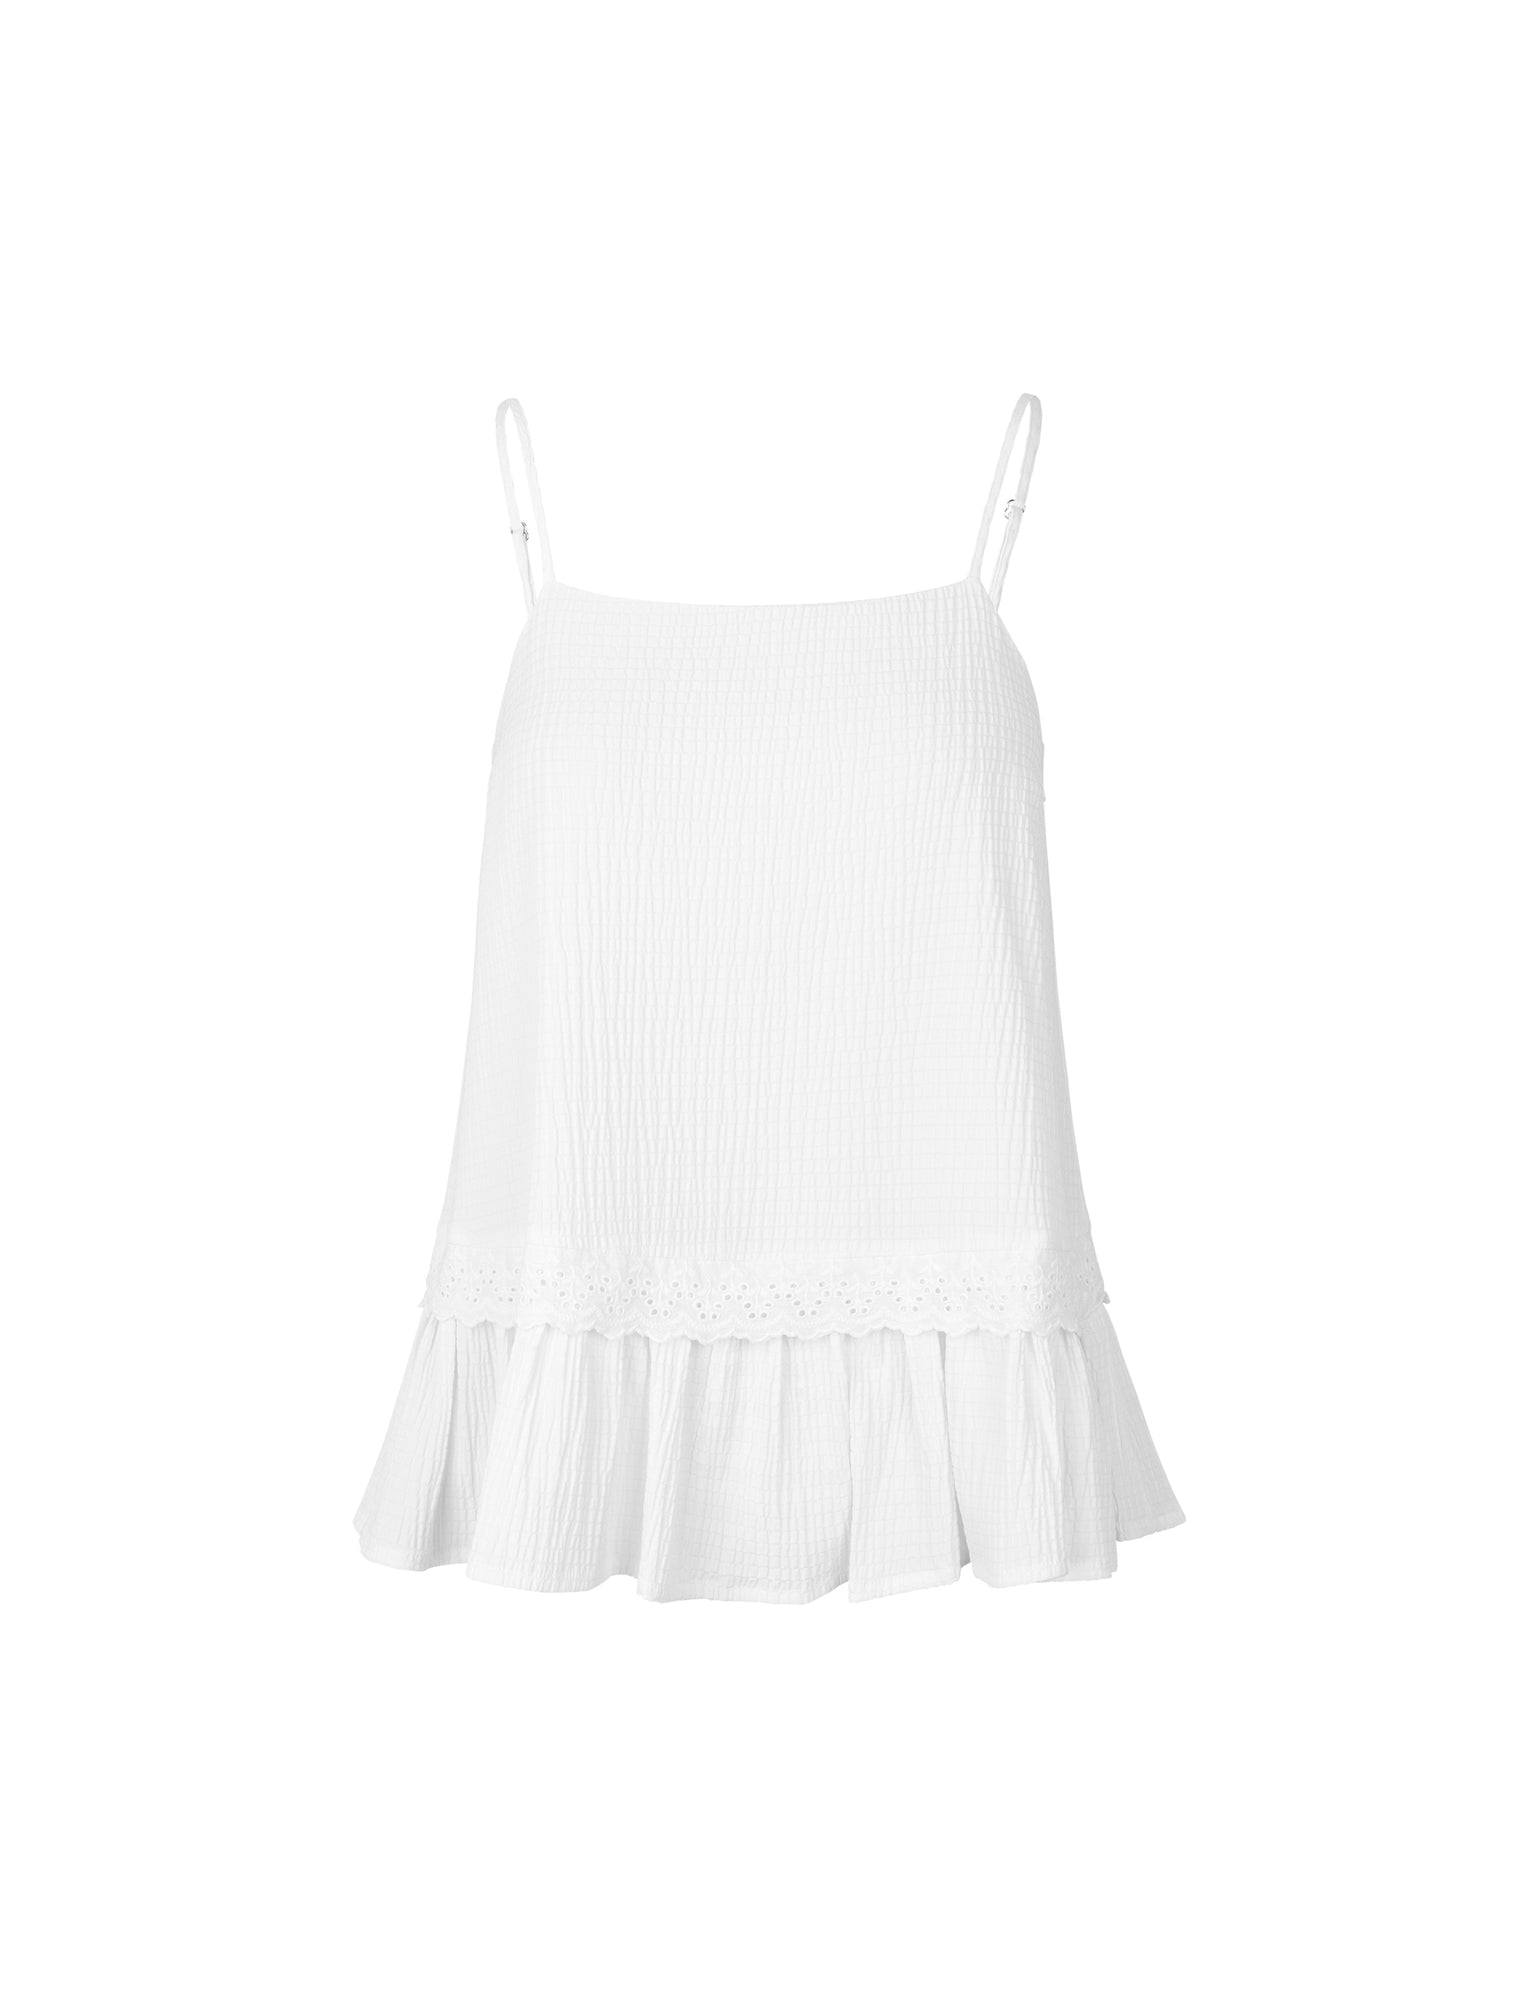 Seersucker Viscose Bista, White